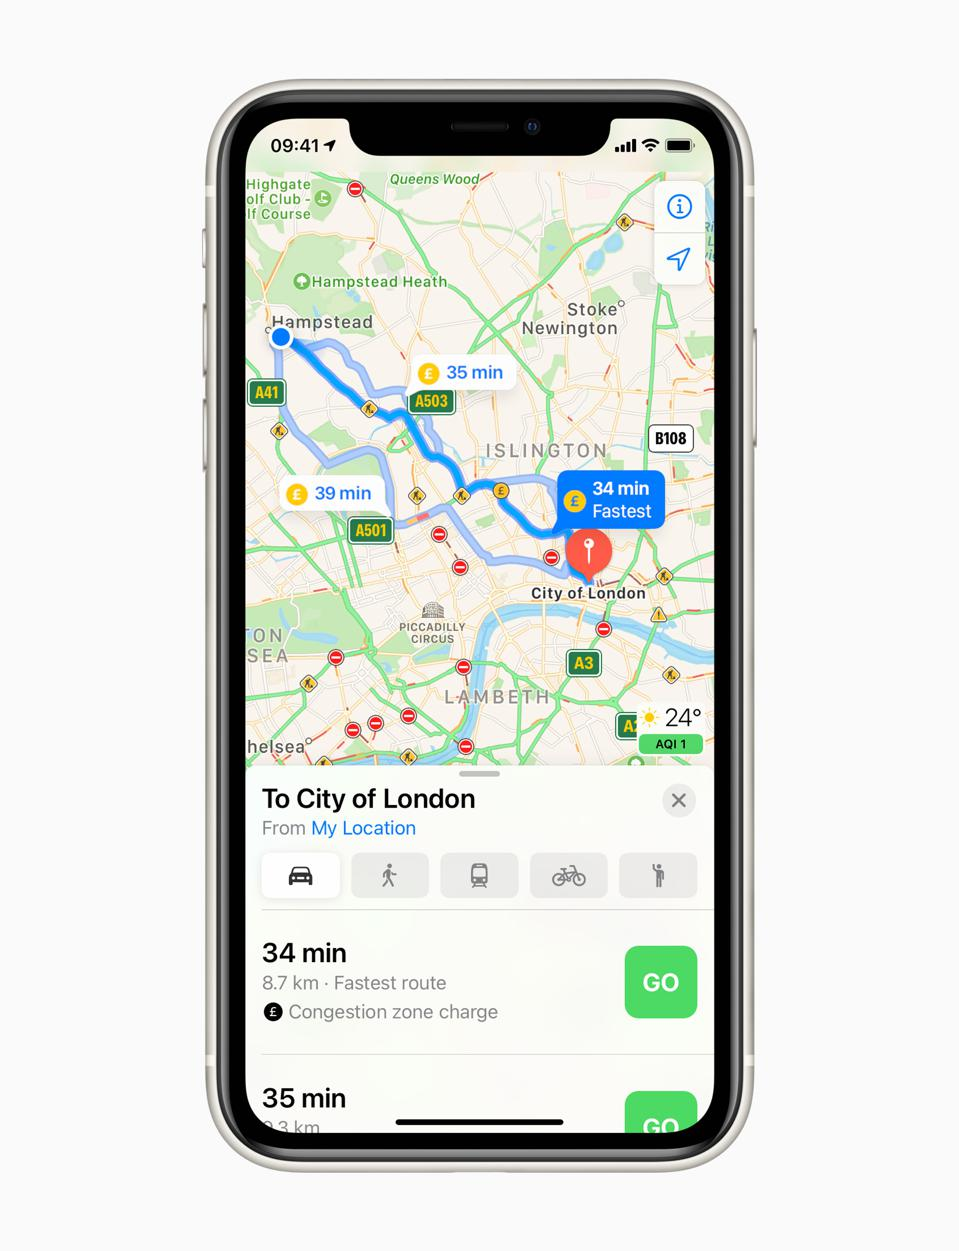 The new Apple Maps includes Congestion Charge information in London.